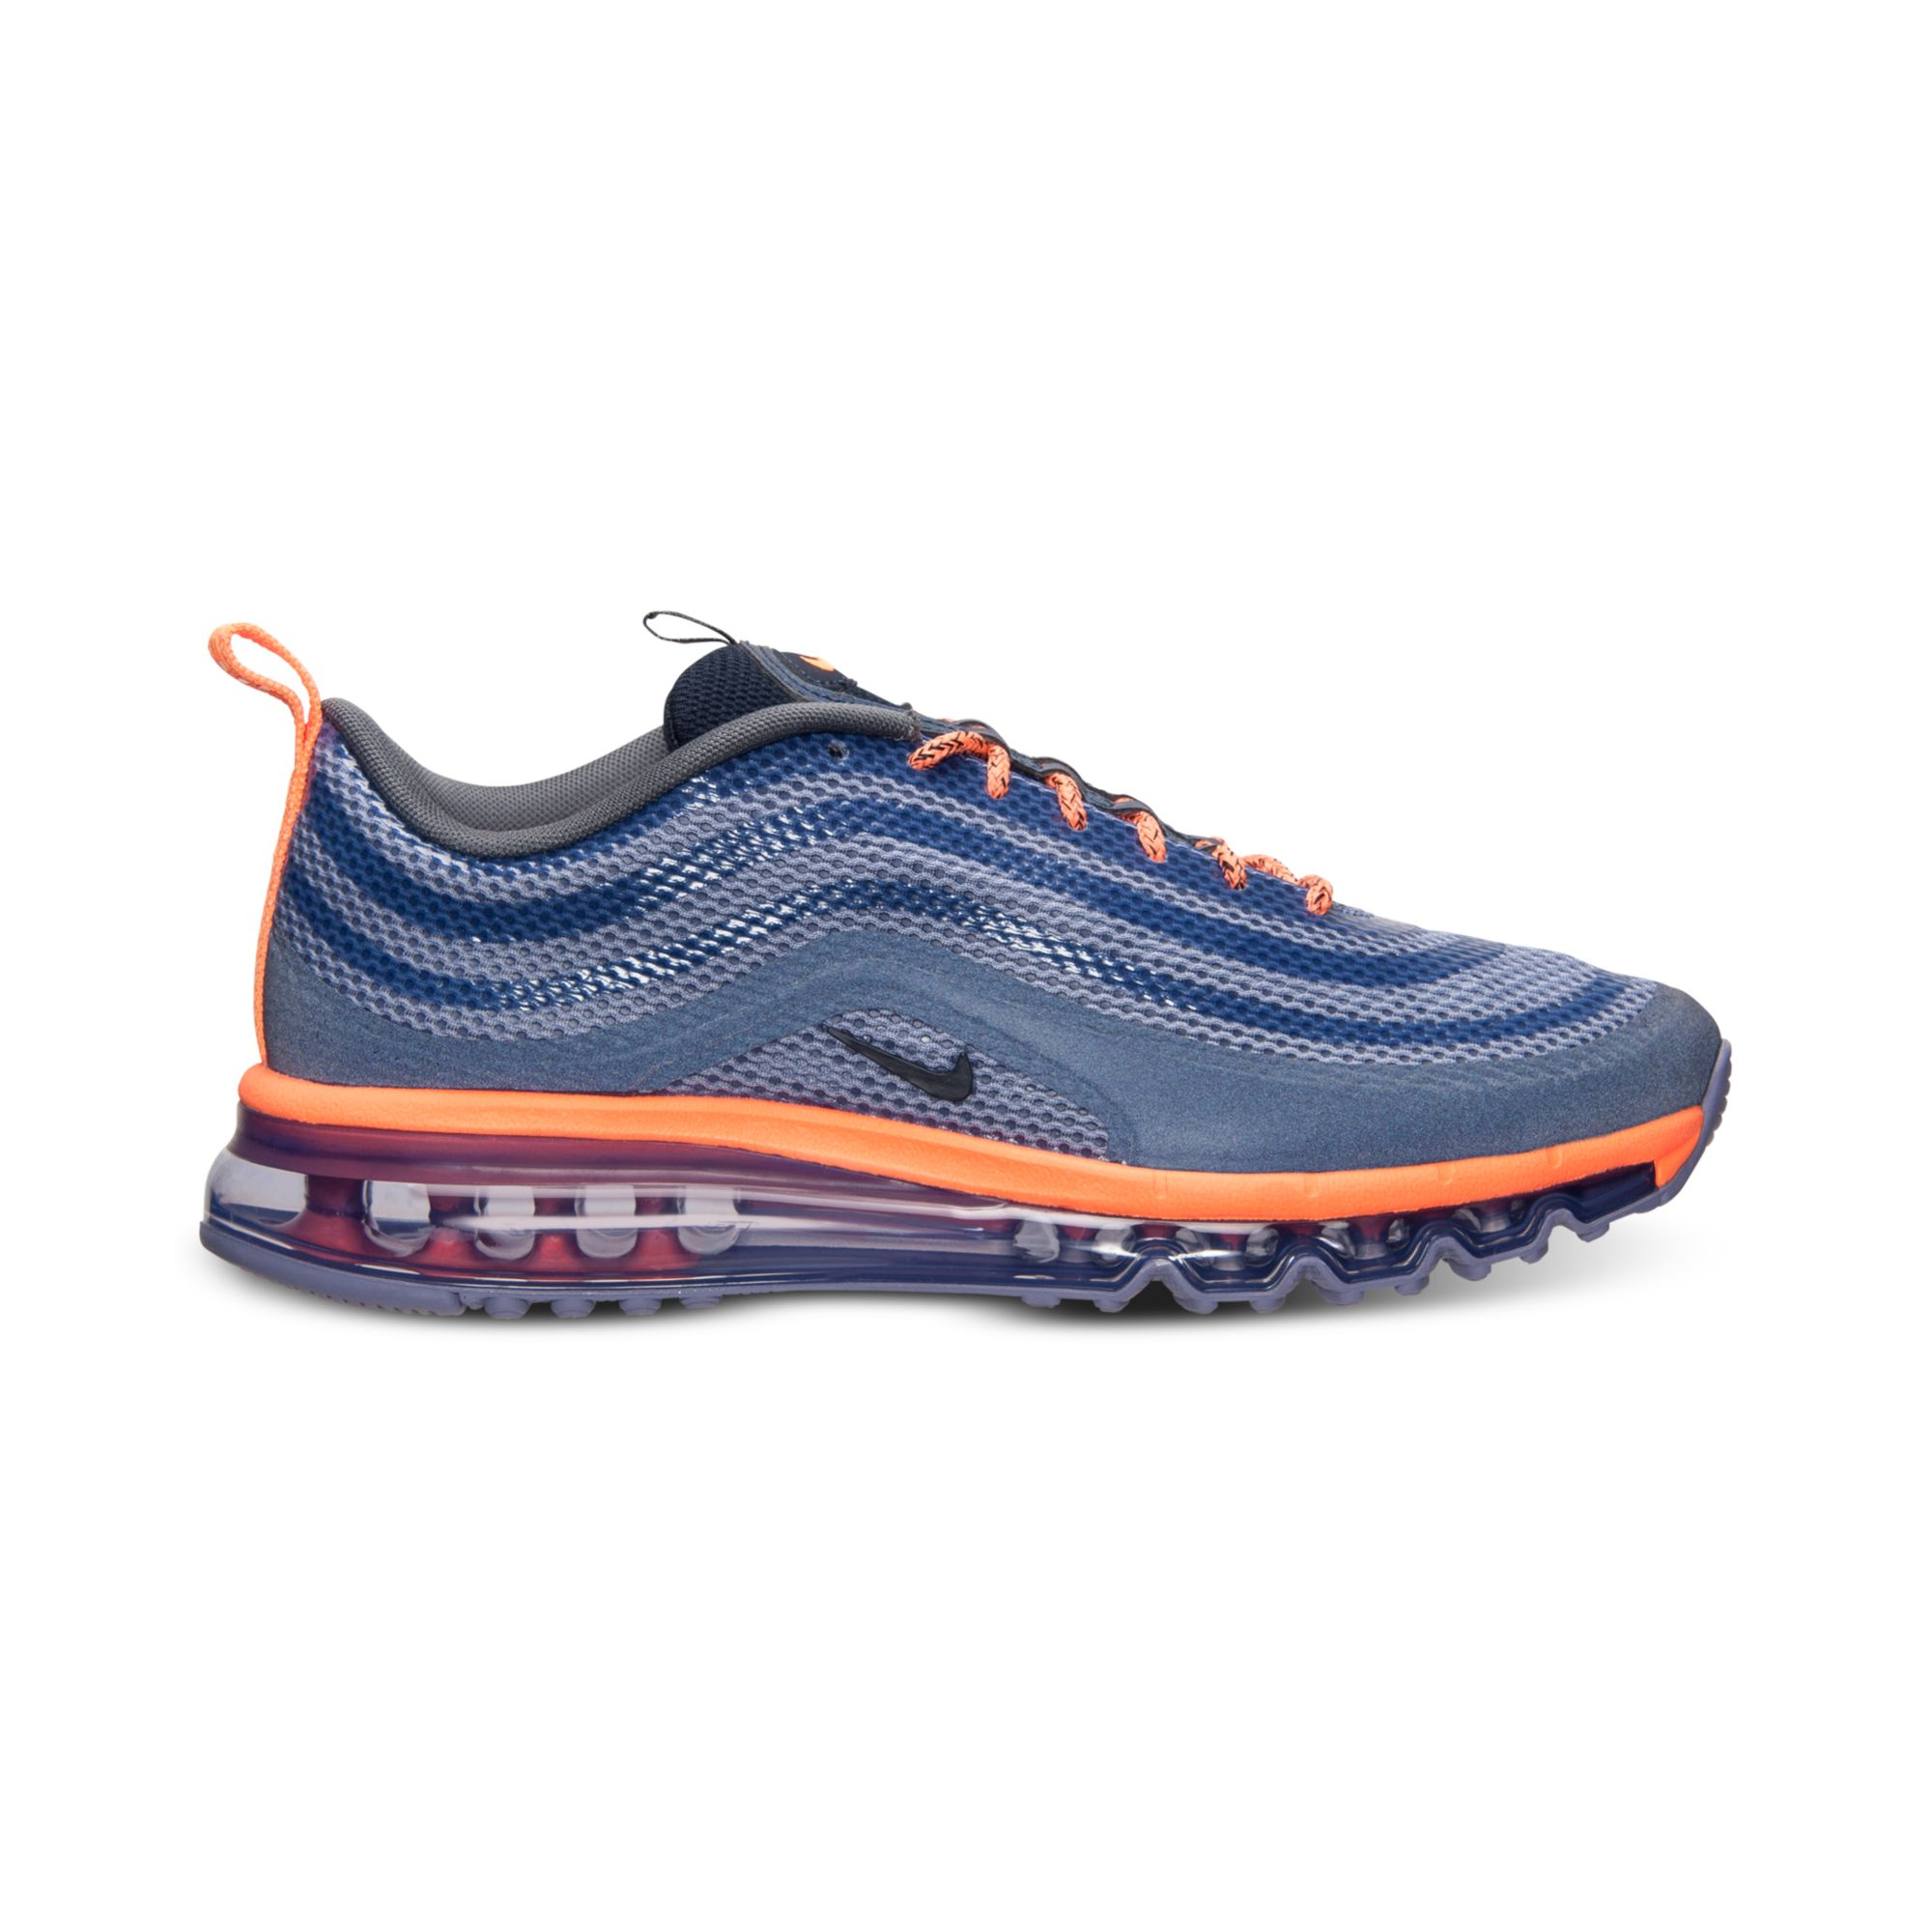 the latest be2c3 23207 ... Lyst - Nike Mens Air Max 97 Hyp Running Sneakers From Finish Line in .  ...